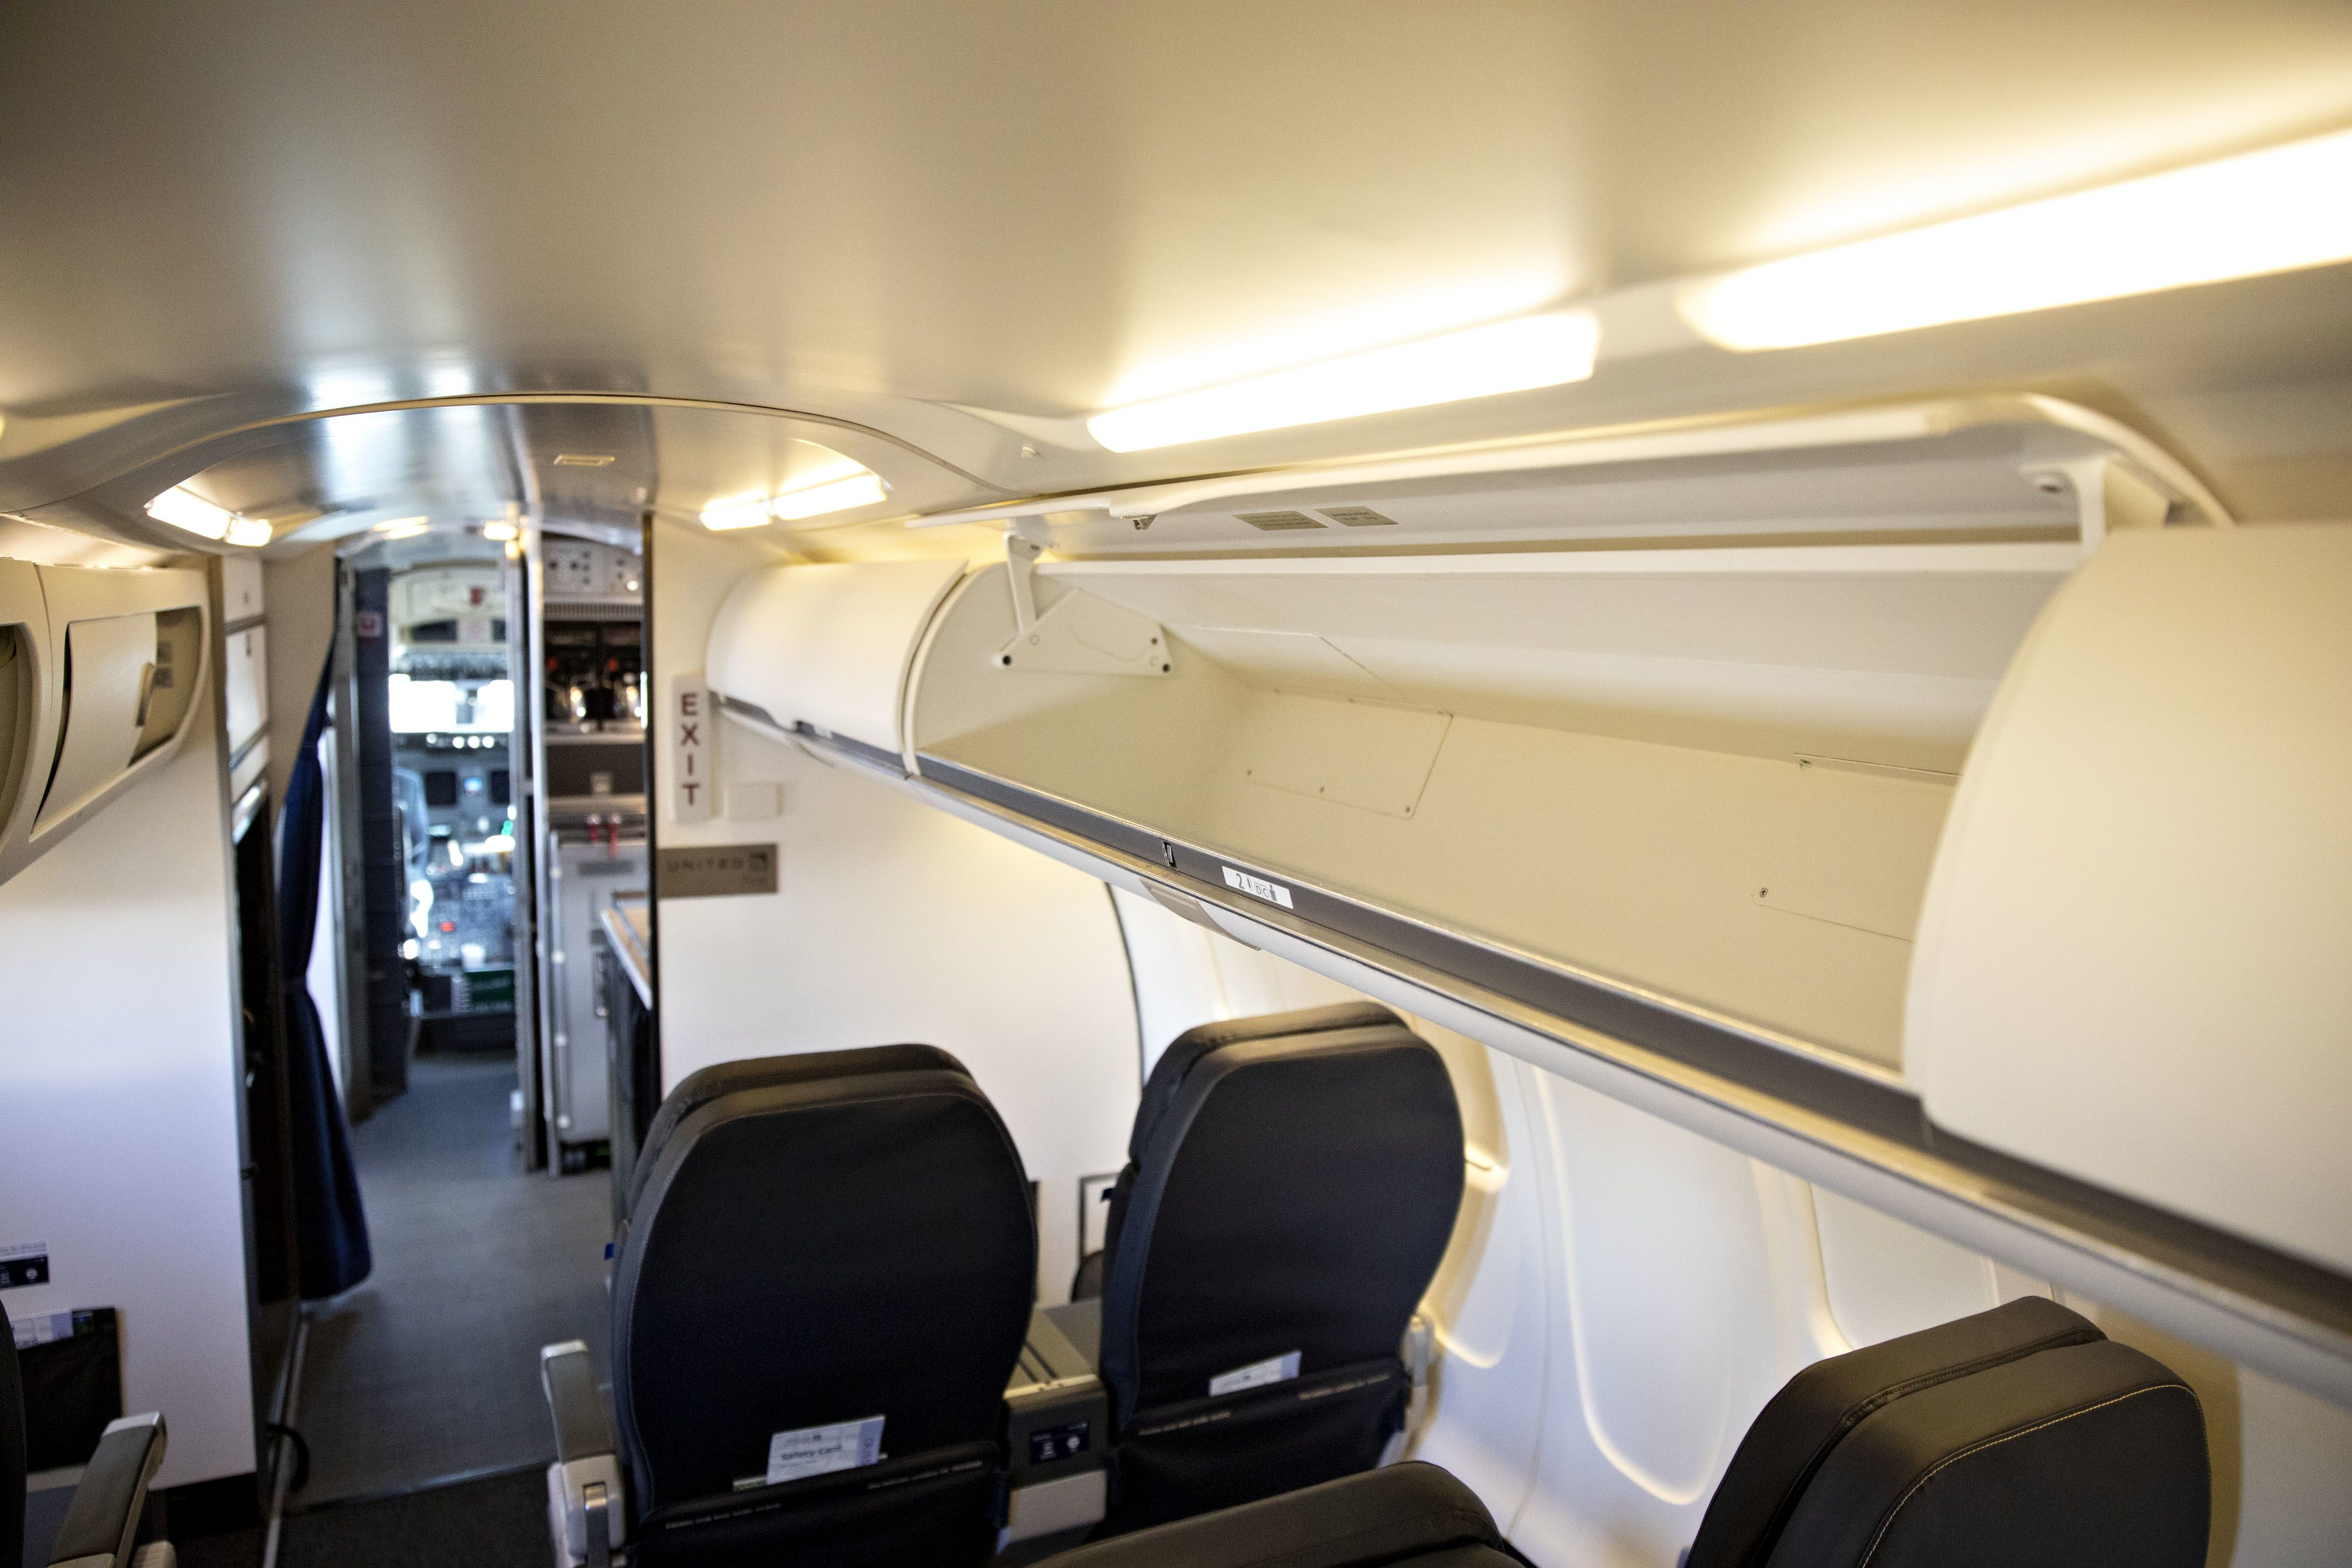 United adding bigger overhead bins to avoid stowage wars — restrictions still apply